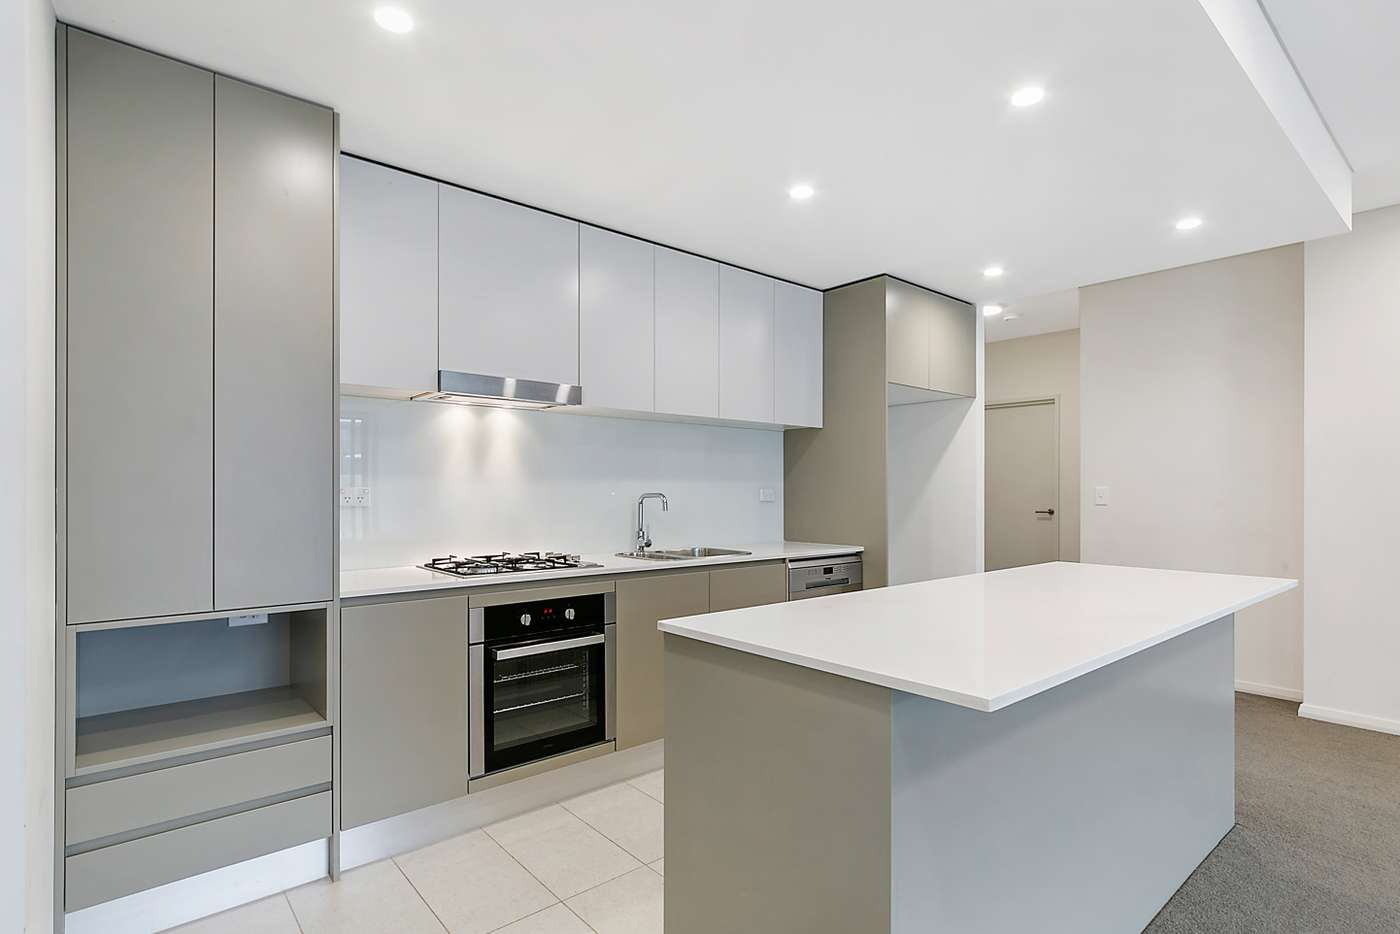 Main view of Homely apartment listing, 221/10 Hezlett Rd, Kellyville, NSW 2155